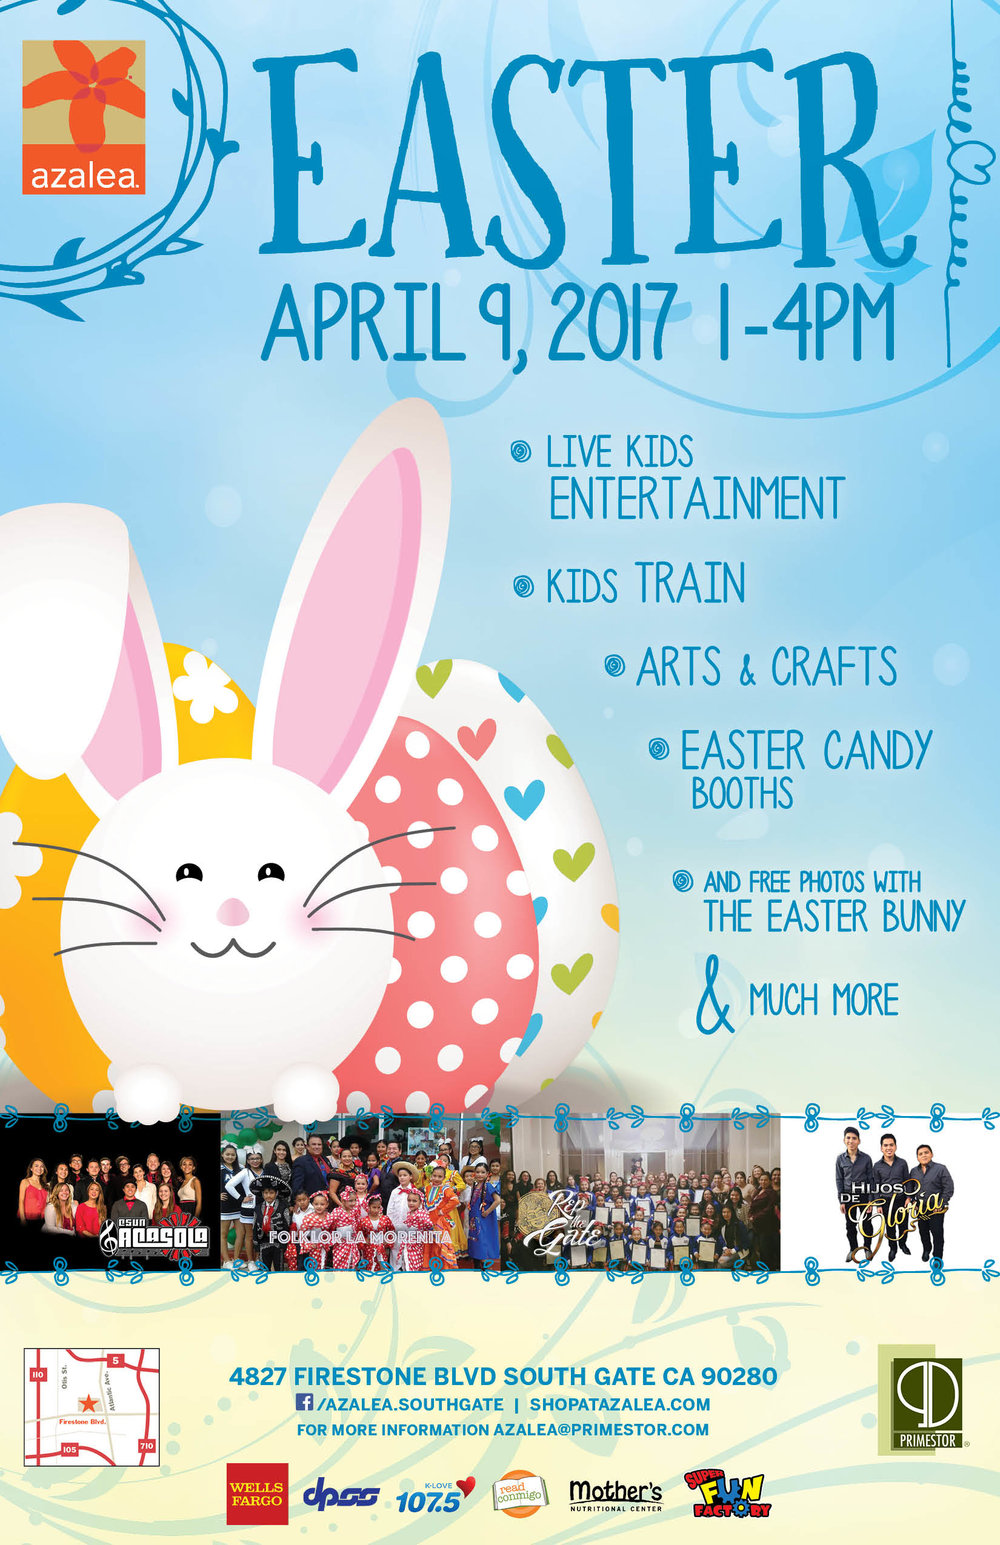 Easter at azalea 2017 square pic.jpg